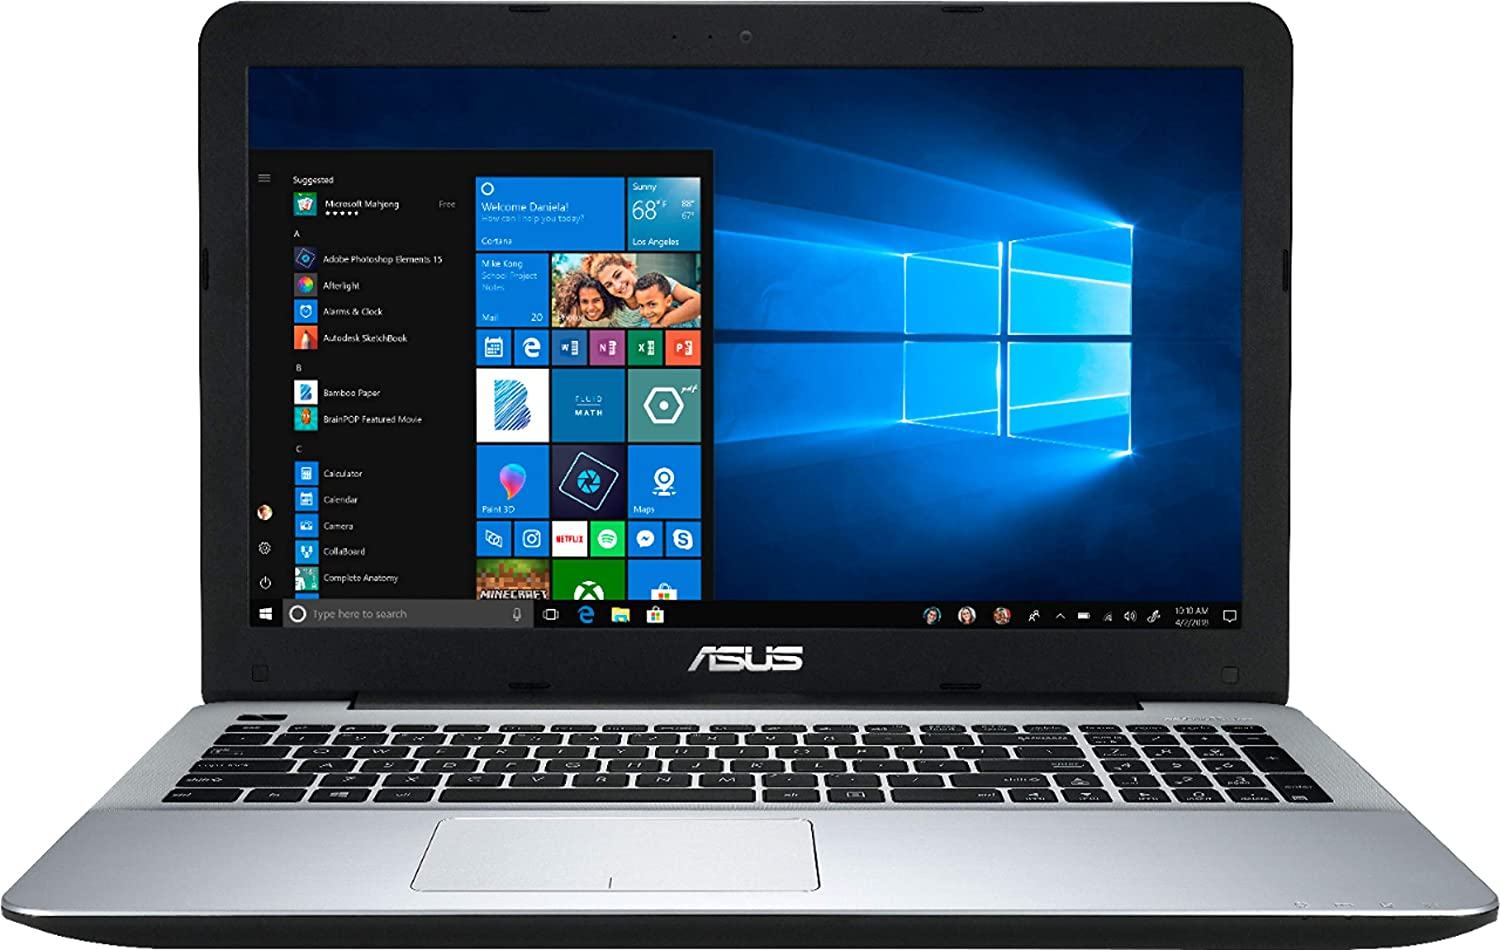 ASUS K52F NOTEBOOK BLUETOOTH WINDOWS 8 DRIVERS DOWNLOAD (2019)